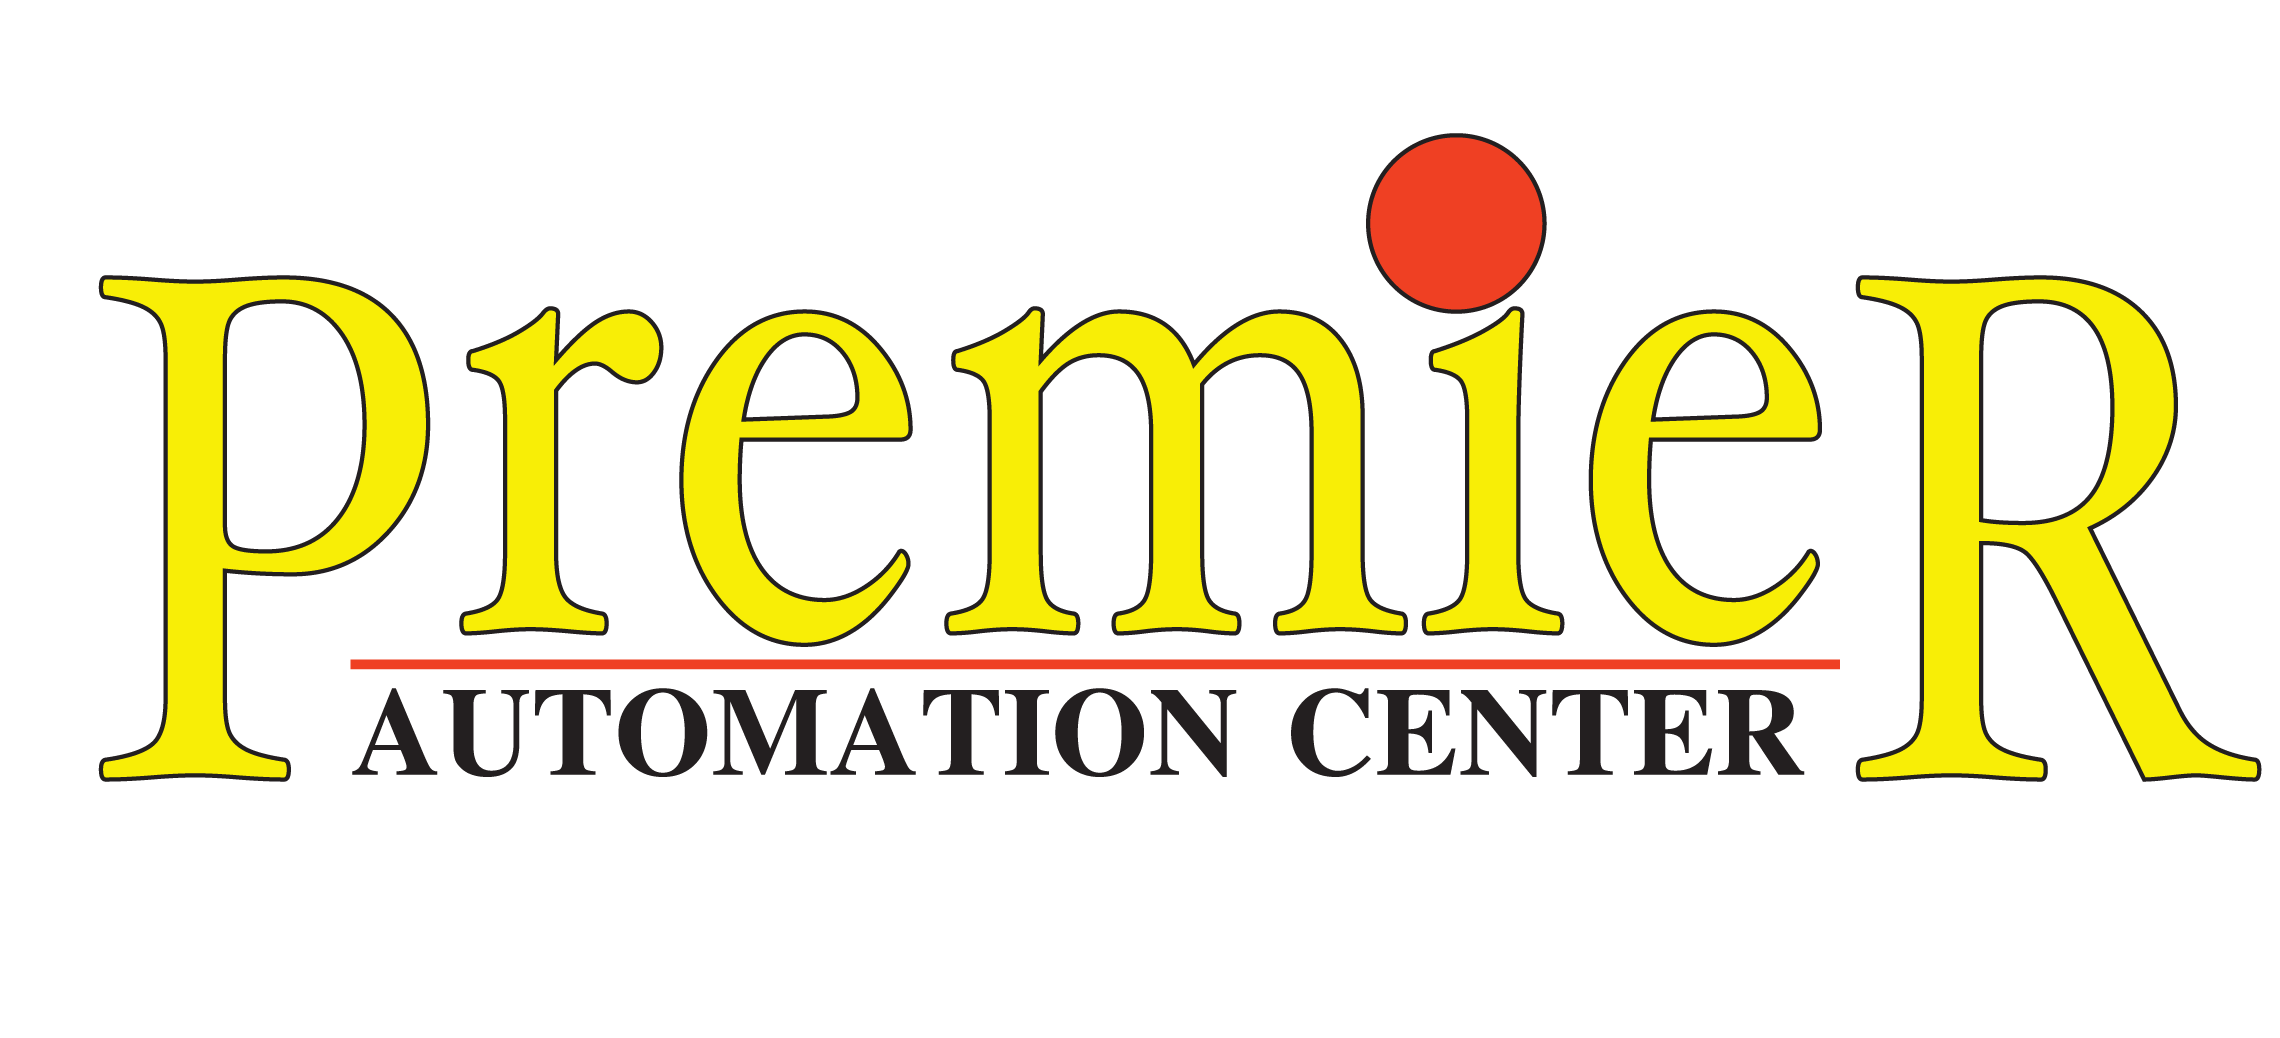 Premier Automation Center Thailand 日本語ページ